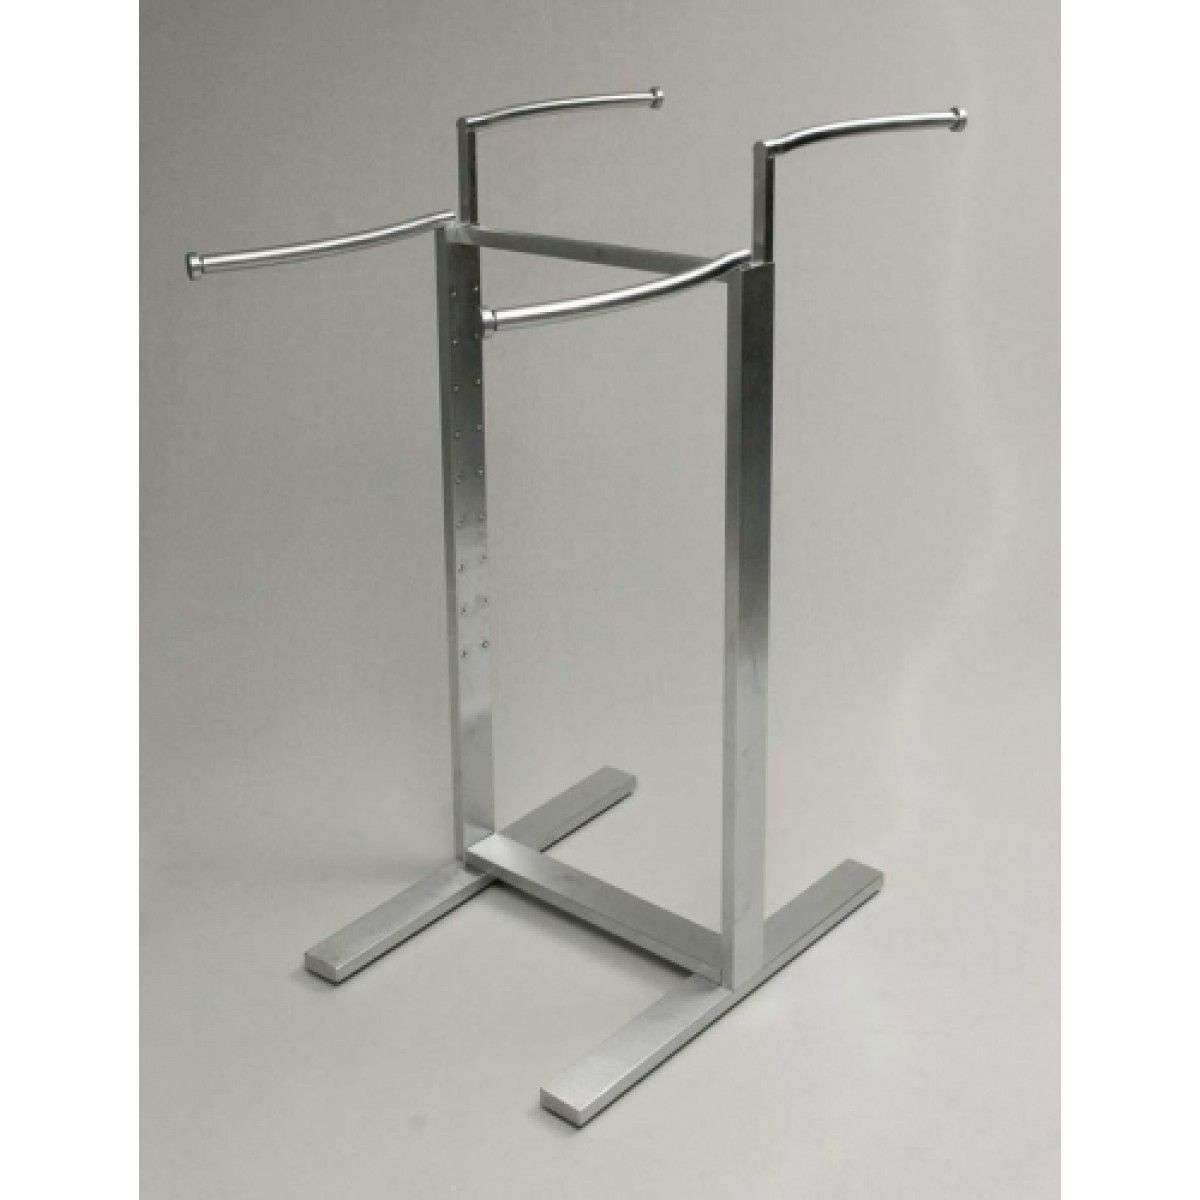 Bauhaus way clothing rack what your store needs and we have